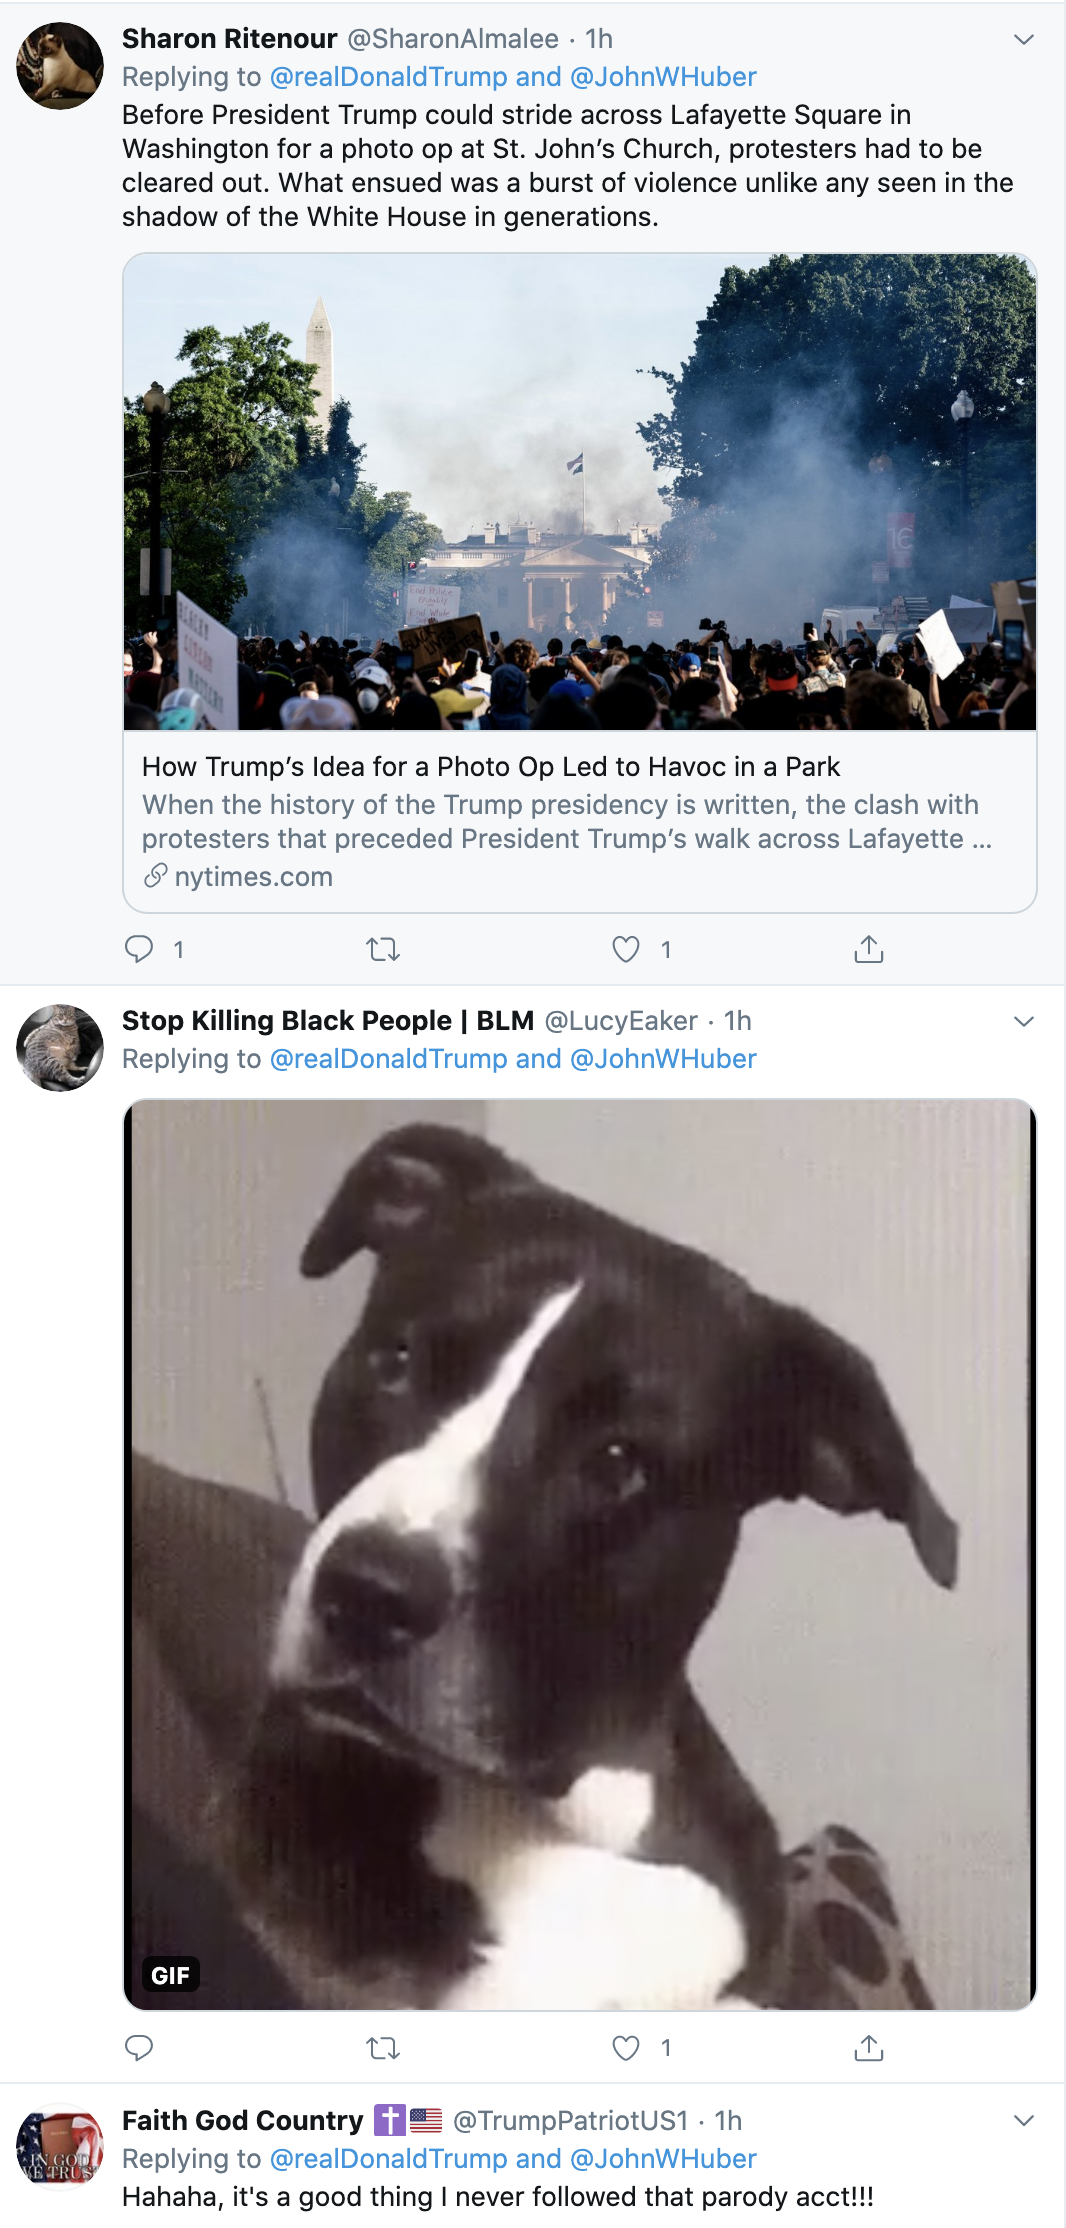 Screen-Shot-2020-06-03-at-7.21.48-AM Trump Calls Black Protestors 'Killers & Thugs' During 8 Tweet Pre-Dawn Meltdown Black Lives Matter Featured Media Politics Top Stories